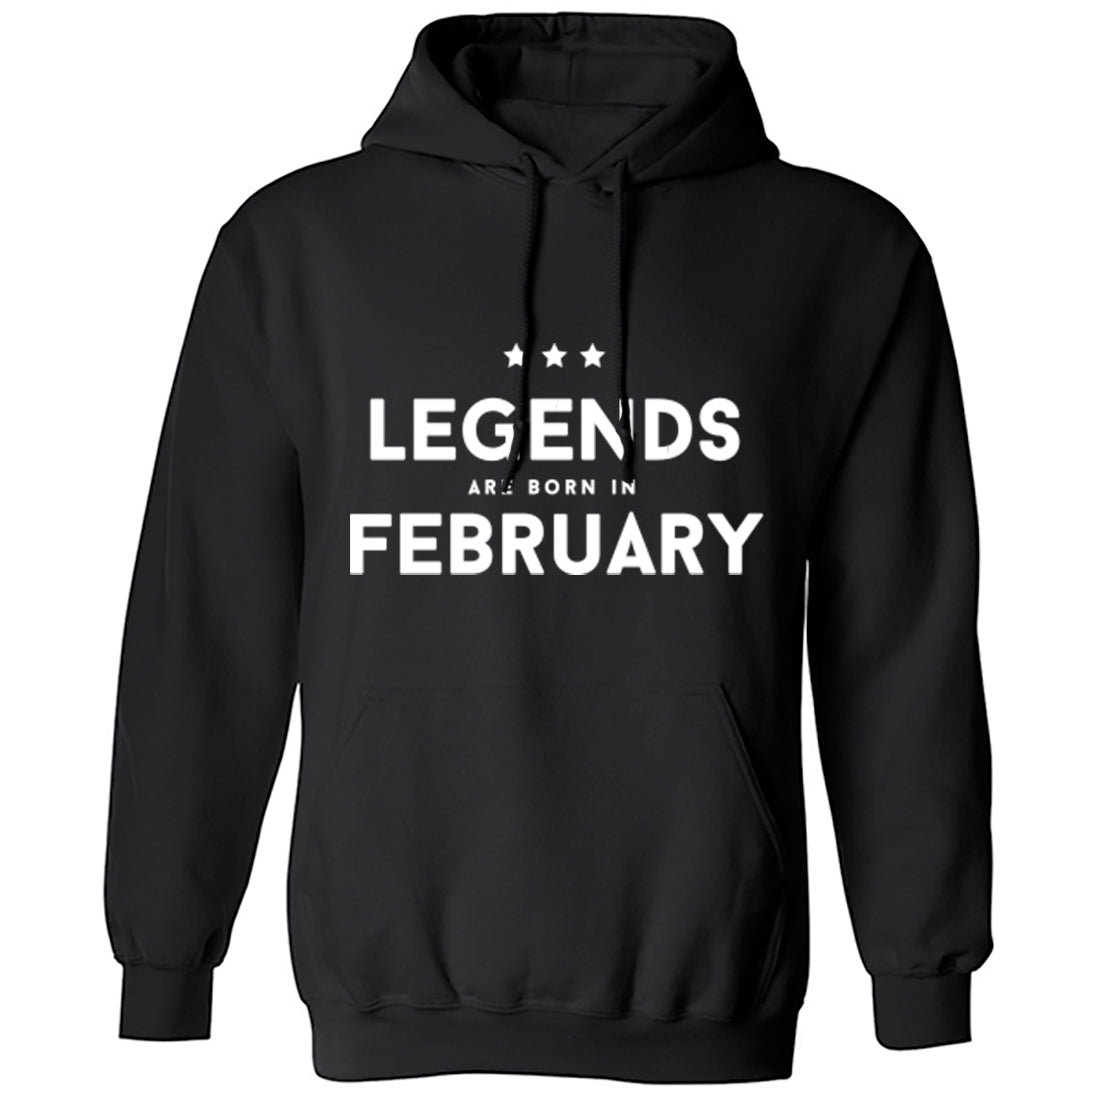 Legends Are Born In February Unisex Hoodie K1420 - Illustrated Identity Ltd.